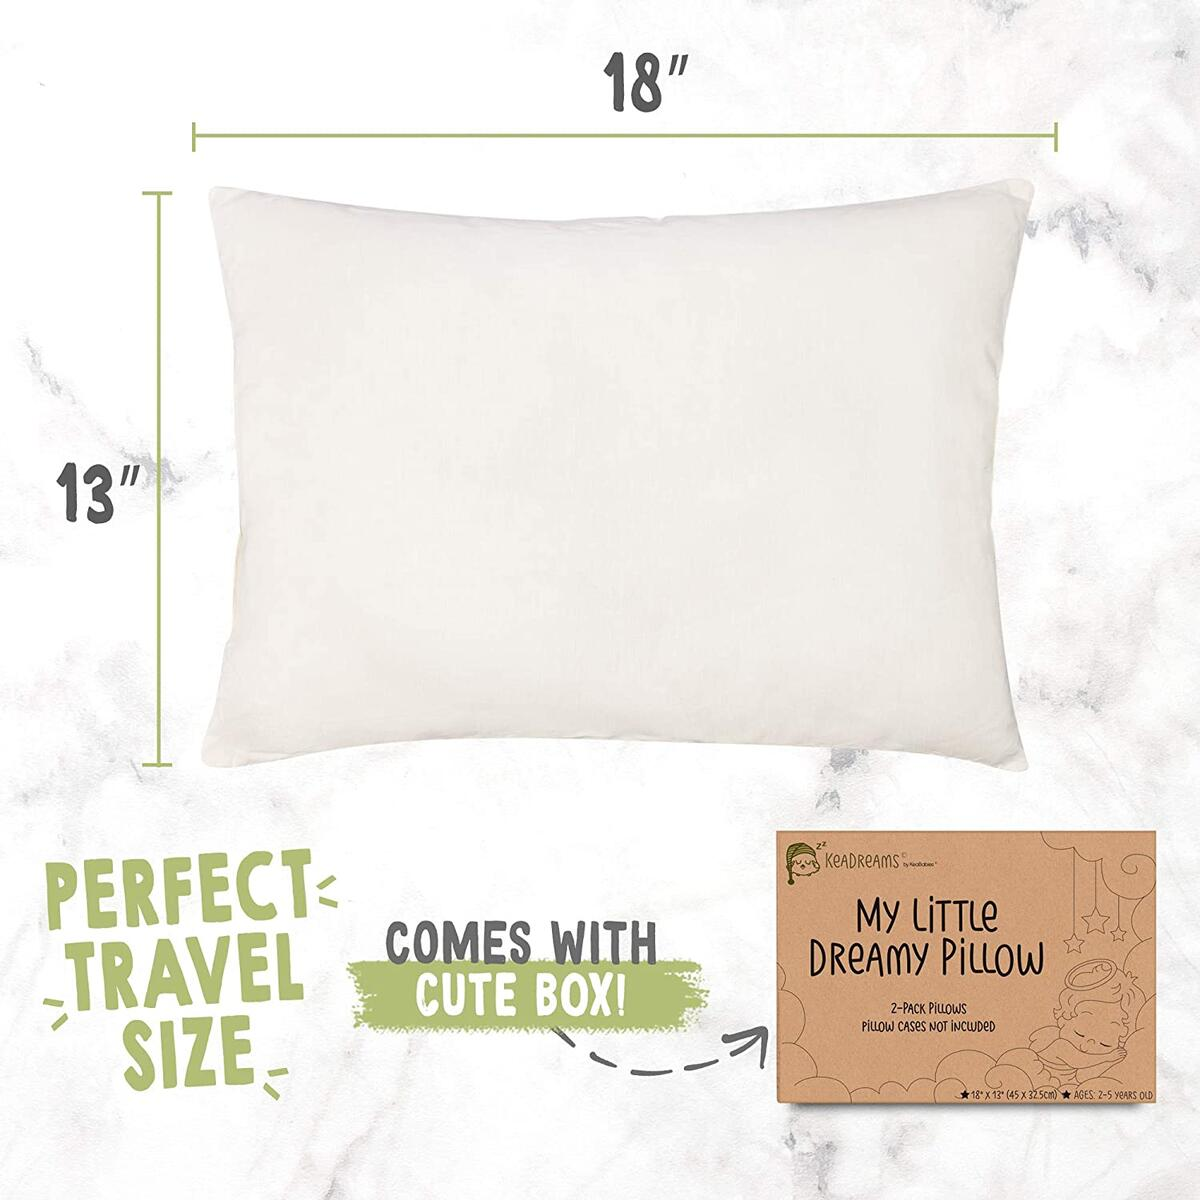 White Toddler Pillow for Sleeping - 2-Pack Soft Organic Cotton Baby Pillows for Sleeping - 13X18 Small Kids Pillow - Baby Pillow - Infant Pillow for Travel, School, Nap - White Pillows - Machine Wash